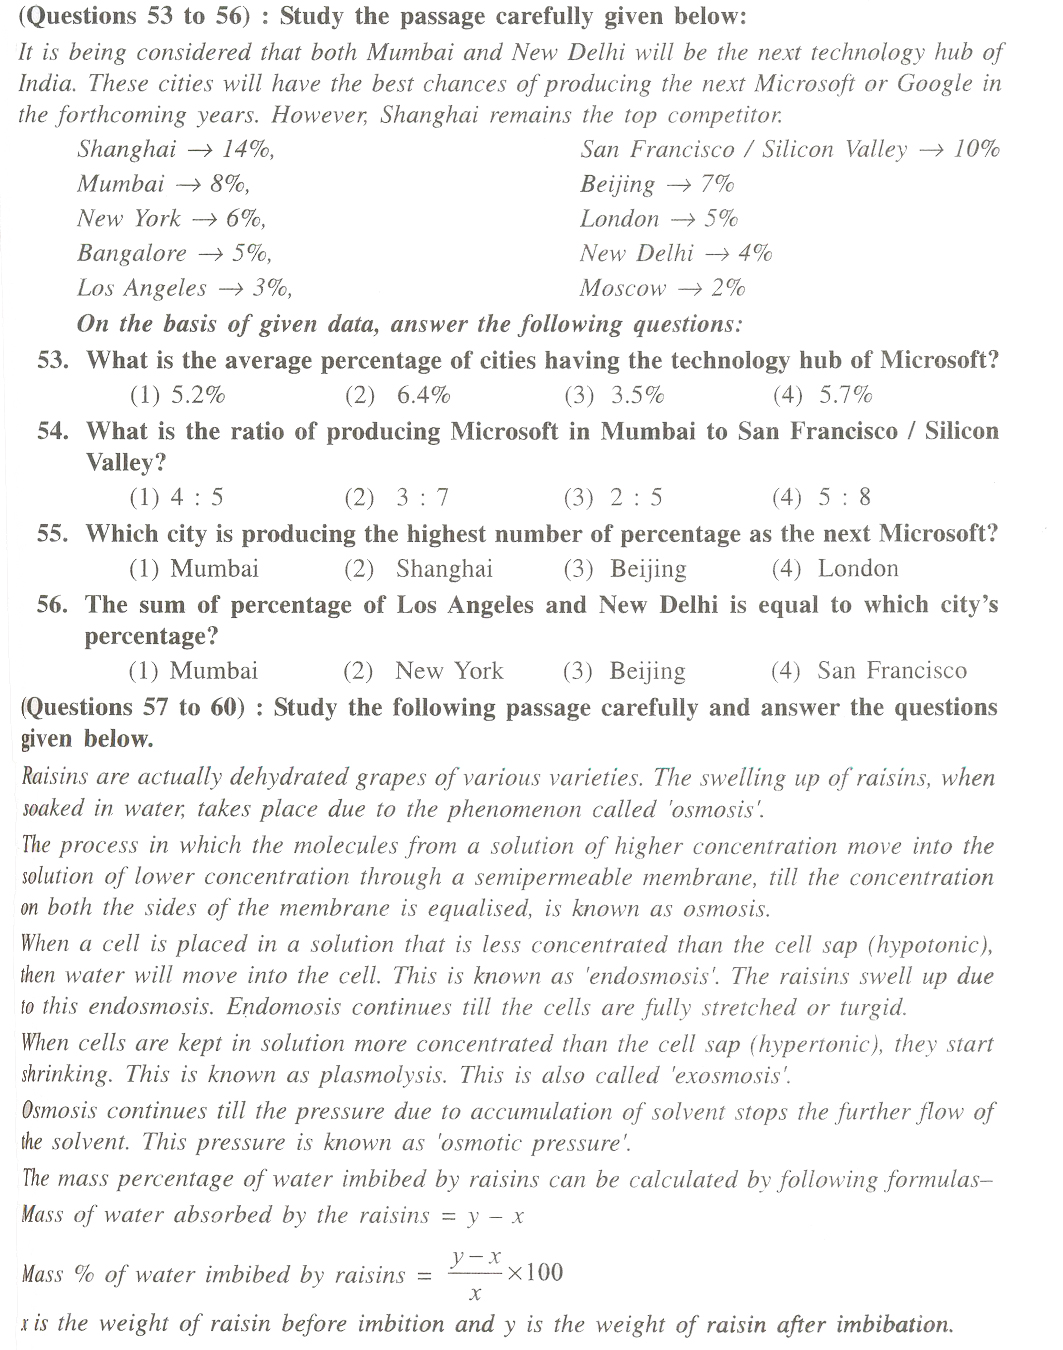 Class IX CBSE PSA Model Test Paper 2015 with Answers